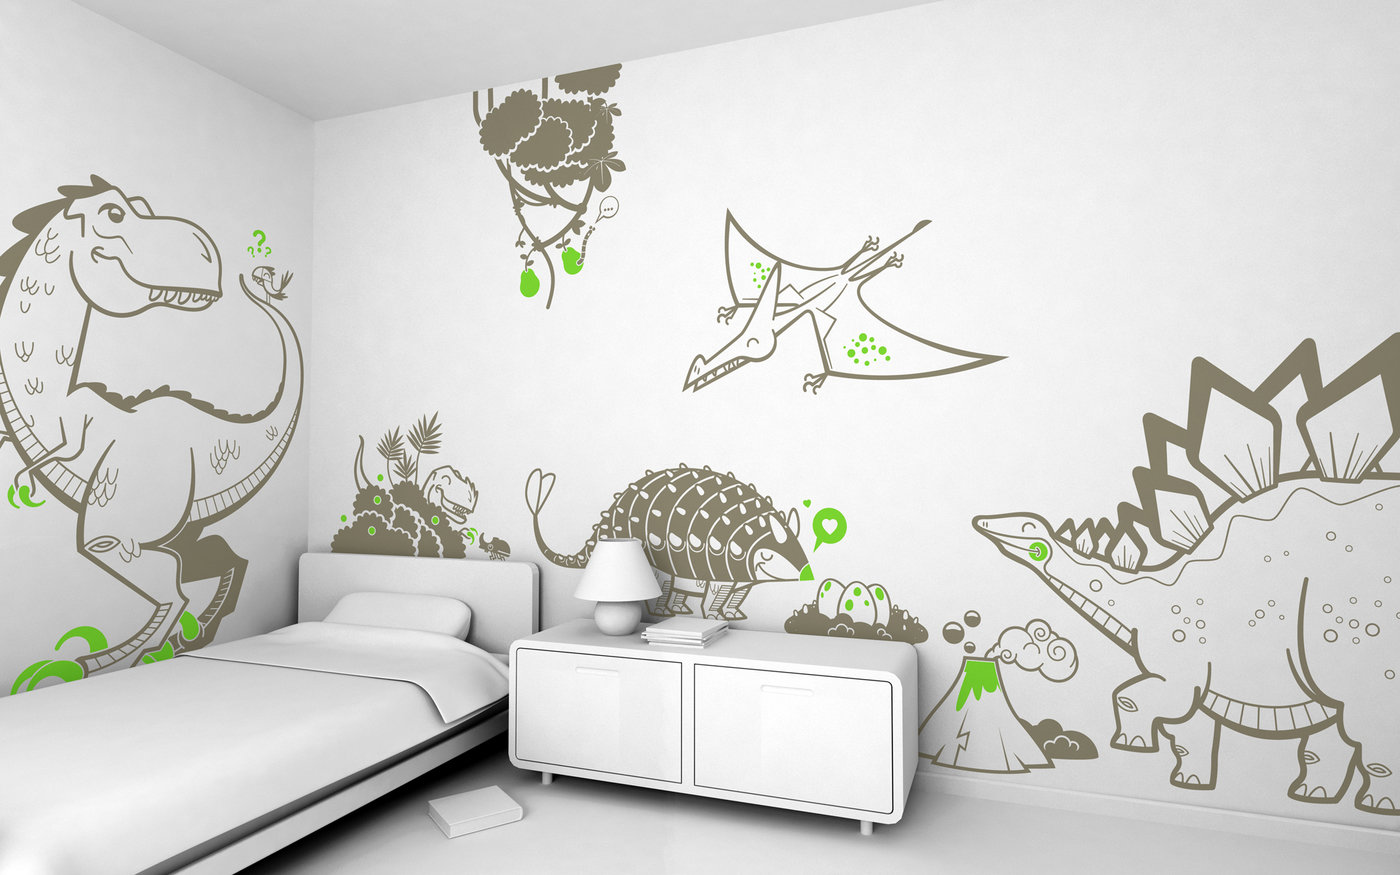 Giant kids wall decals by e glue studio at coroflot dinosaur time pack of wall stickers for baby nursery or kids room amipublicfo Gallery